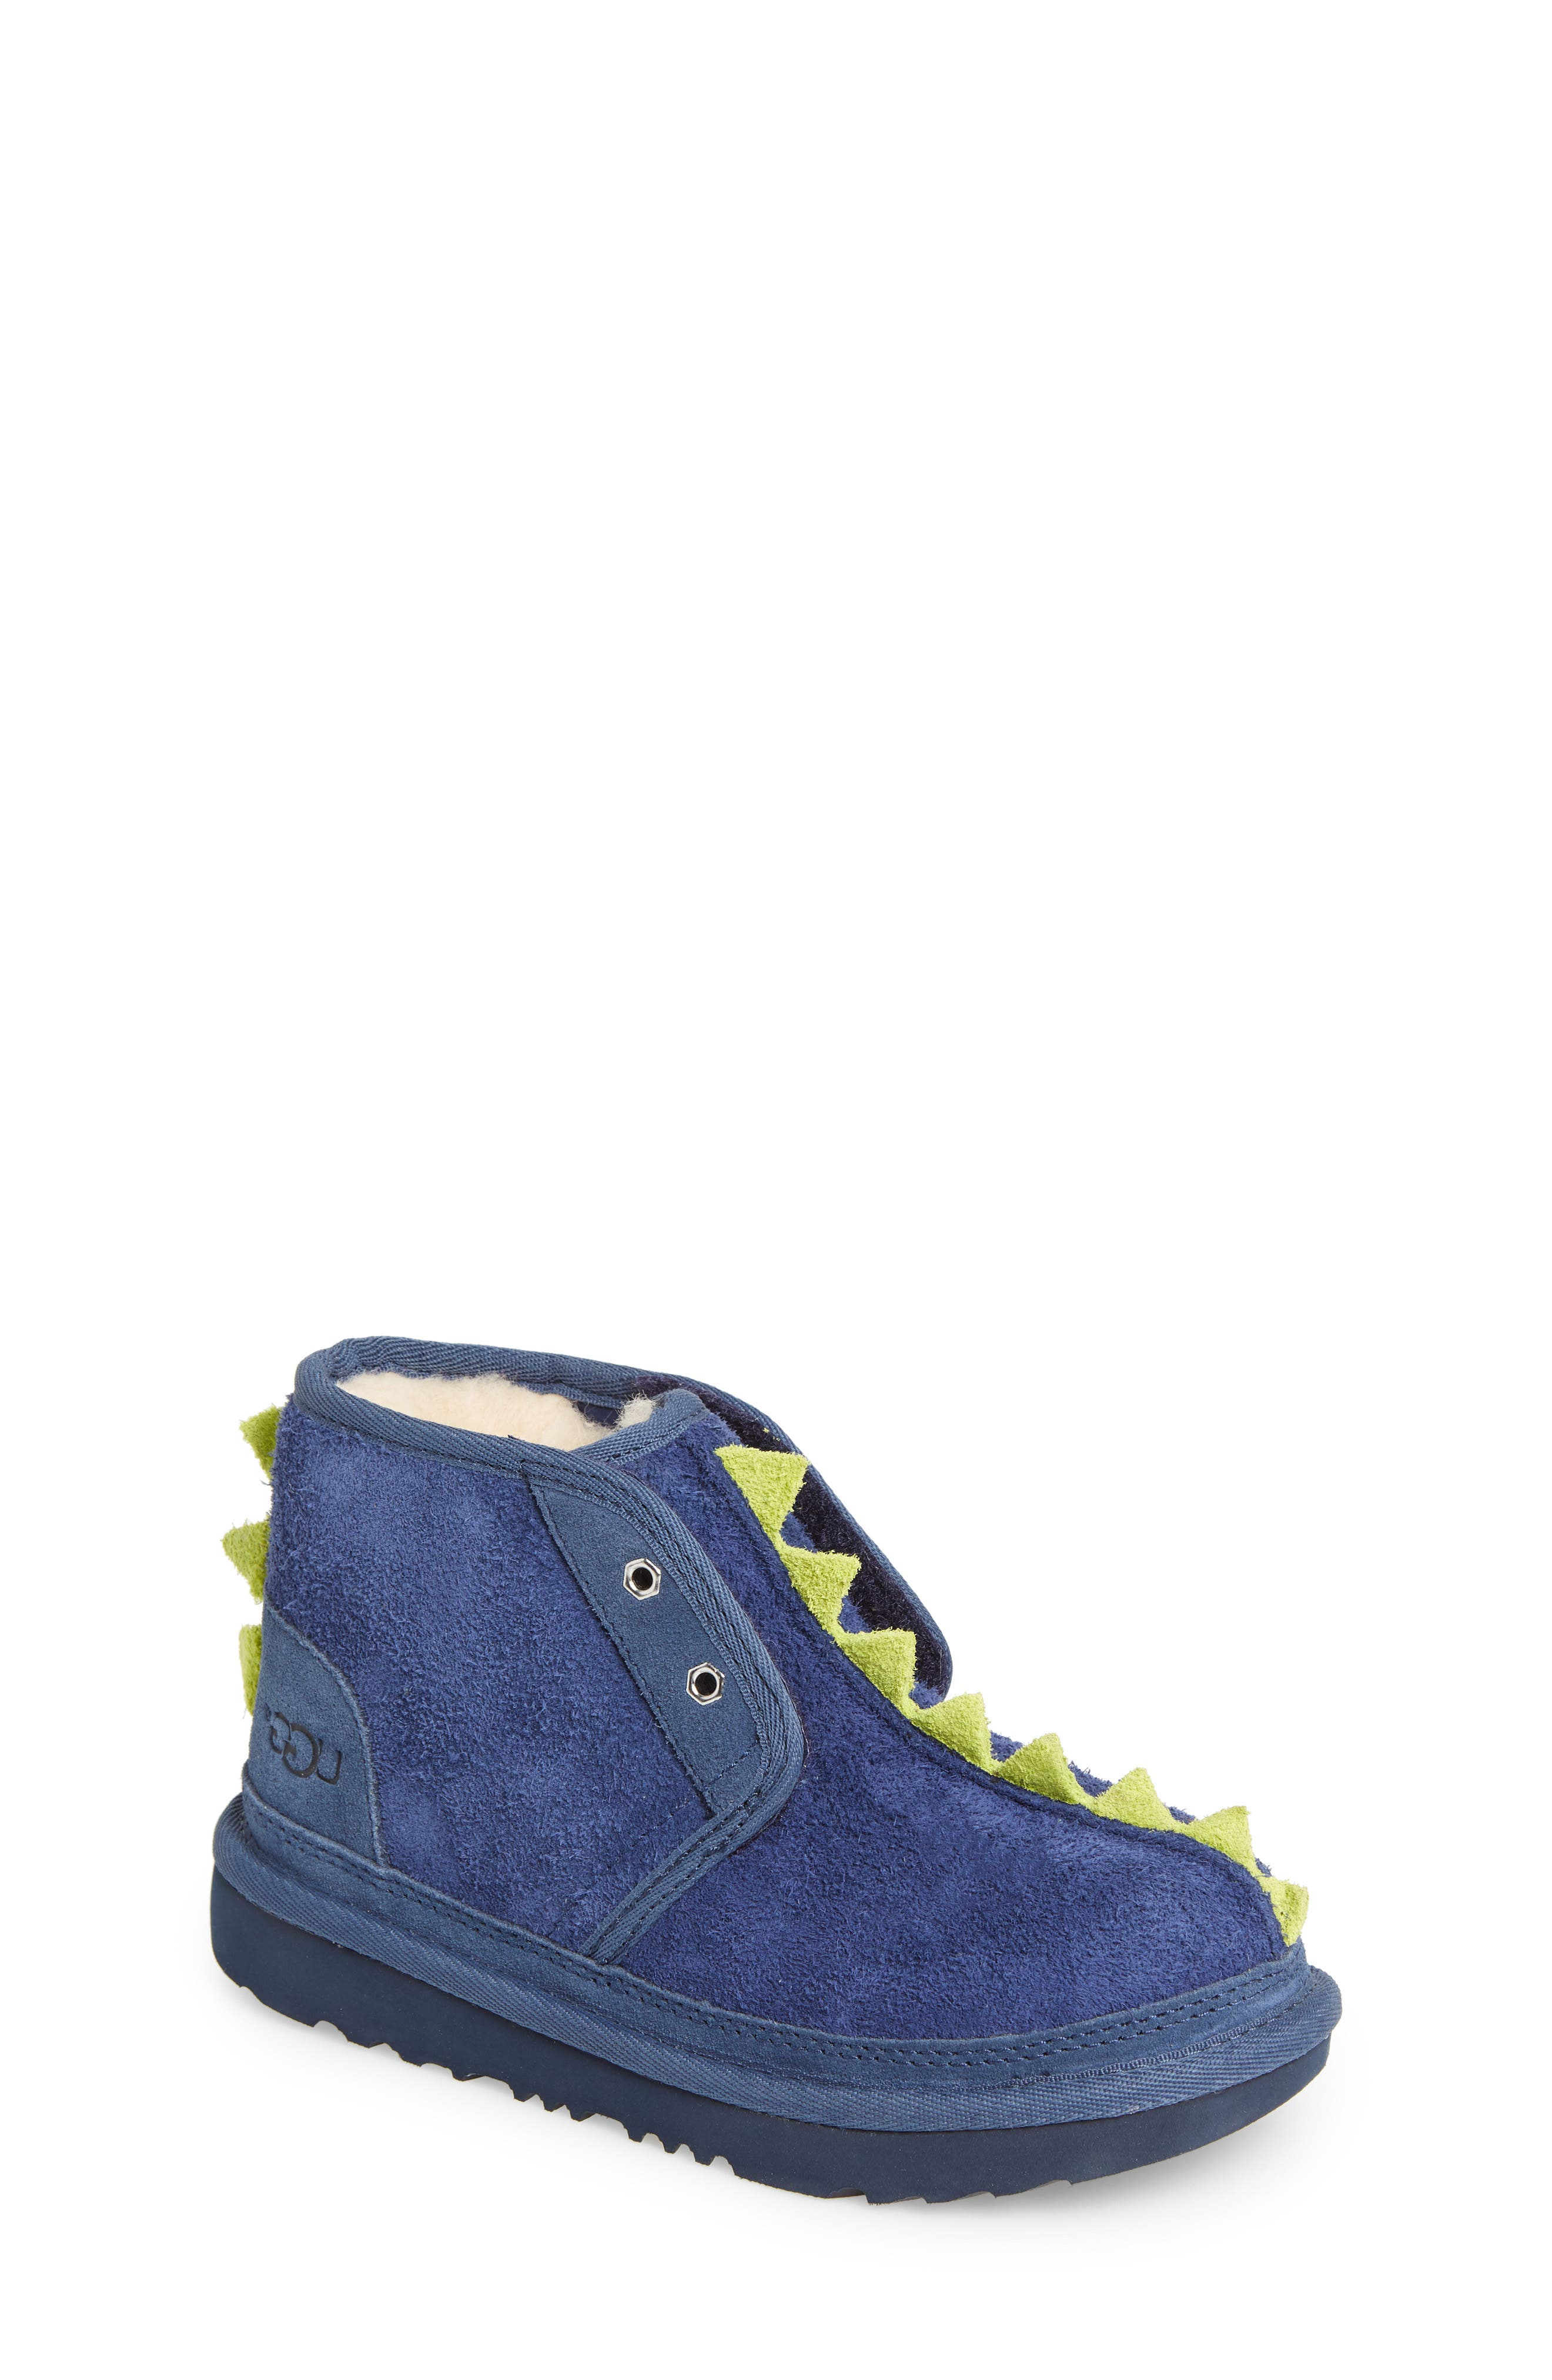 Dydo Neumel Genuine Shearling Lined Boot,                         Main,                         color, NAVY / BRIGHT CHARTREUSE